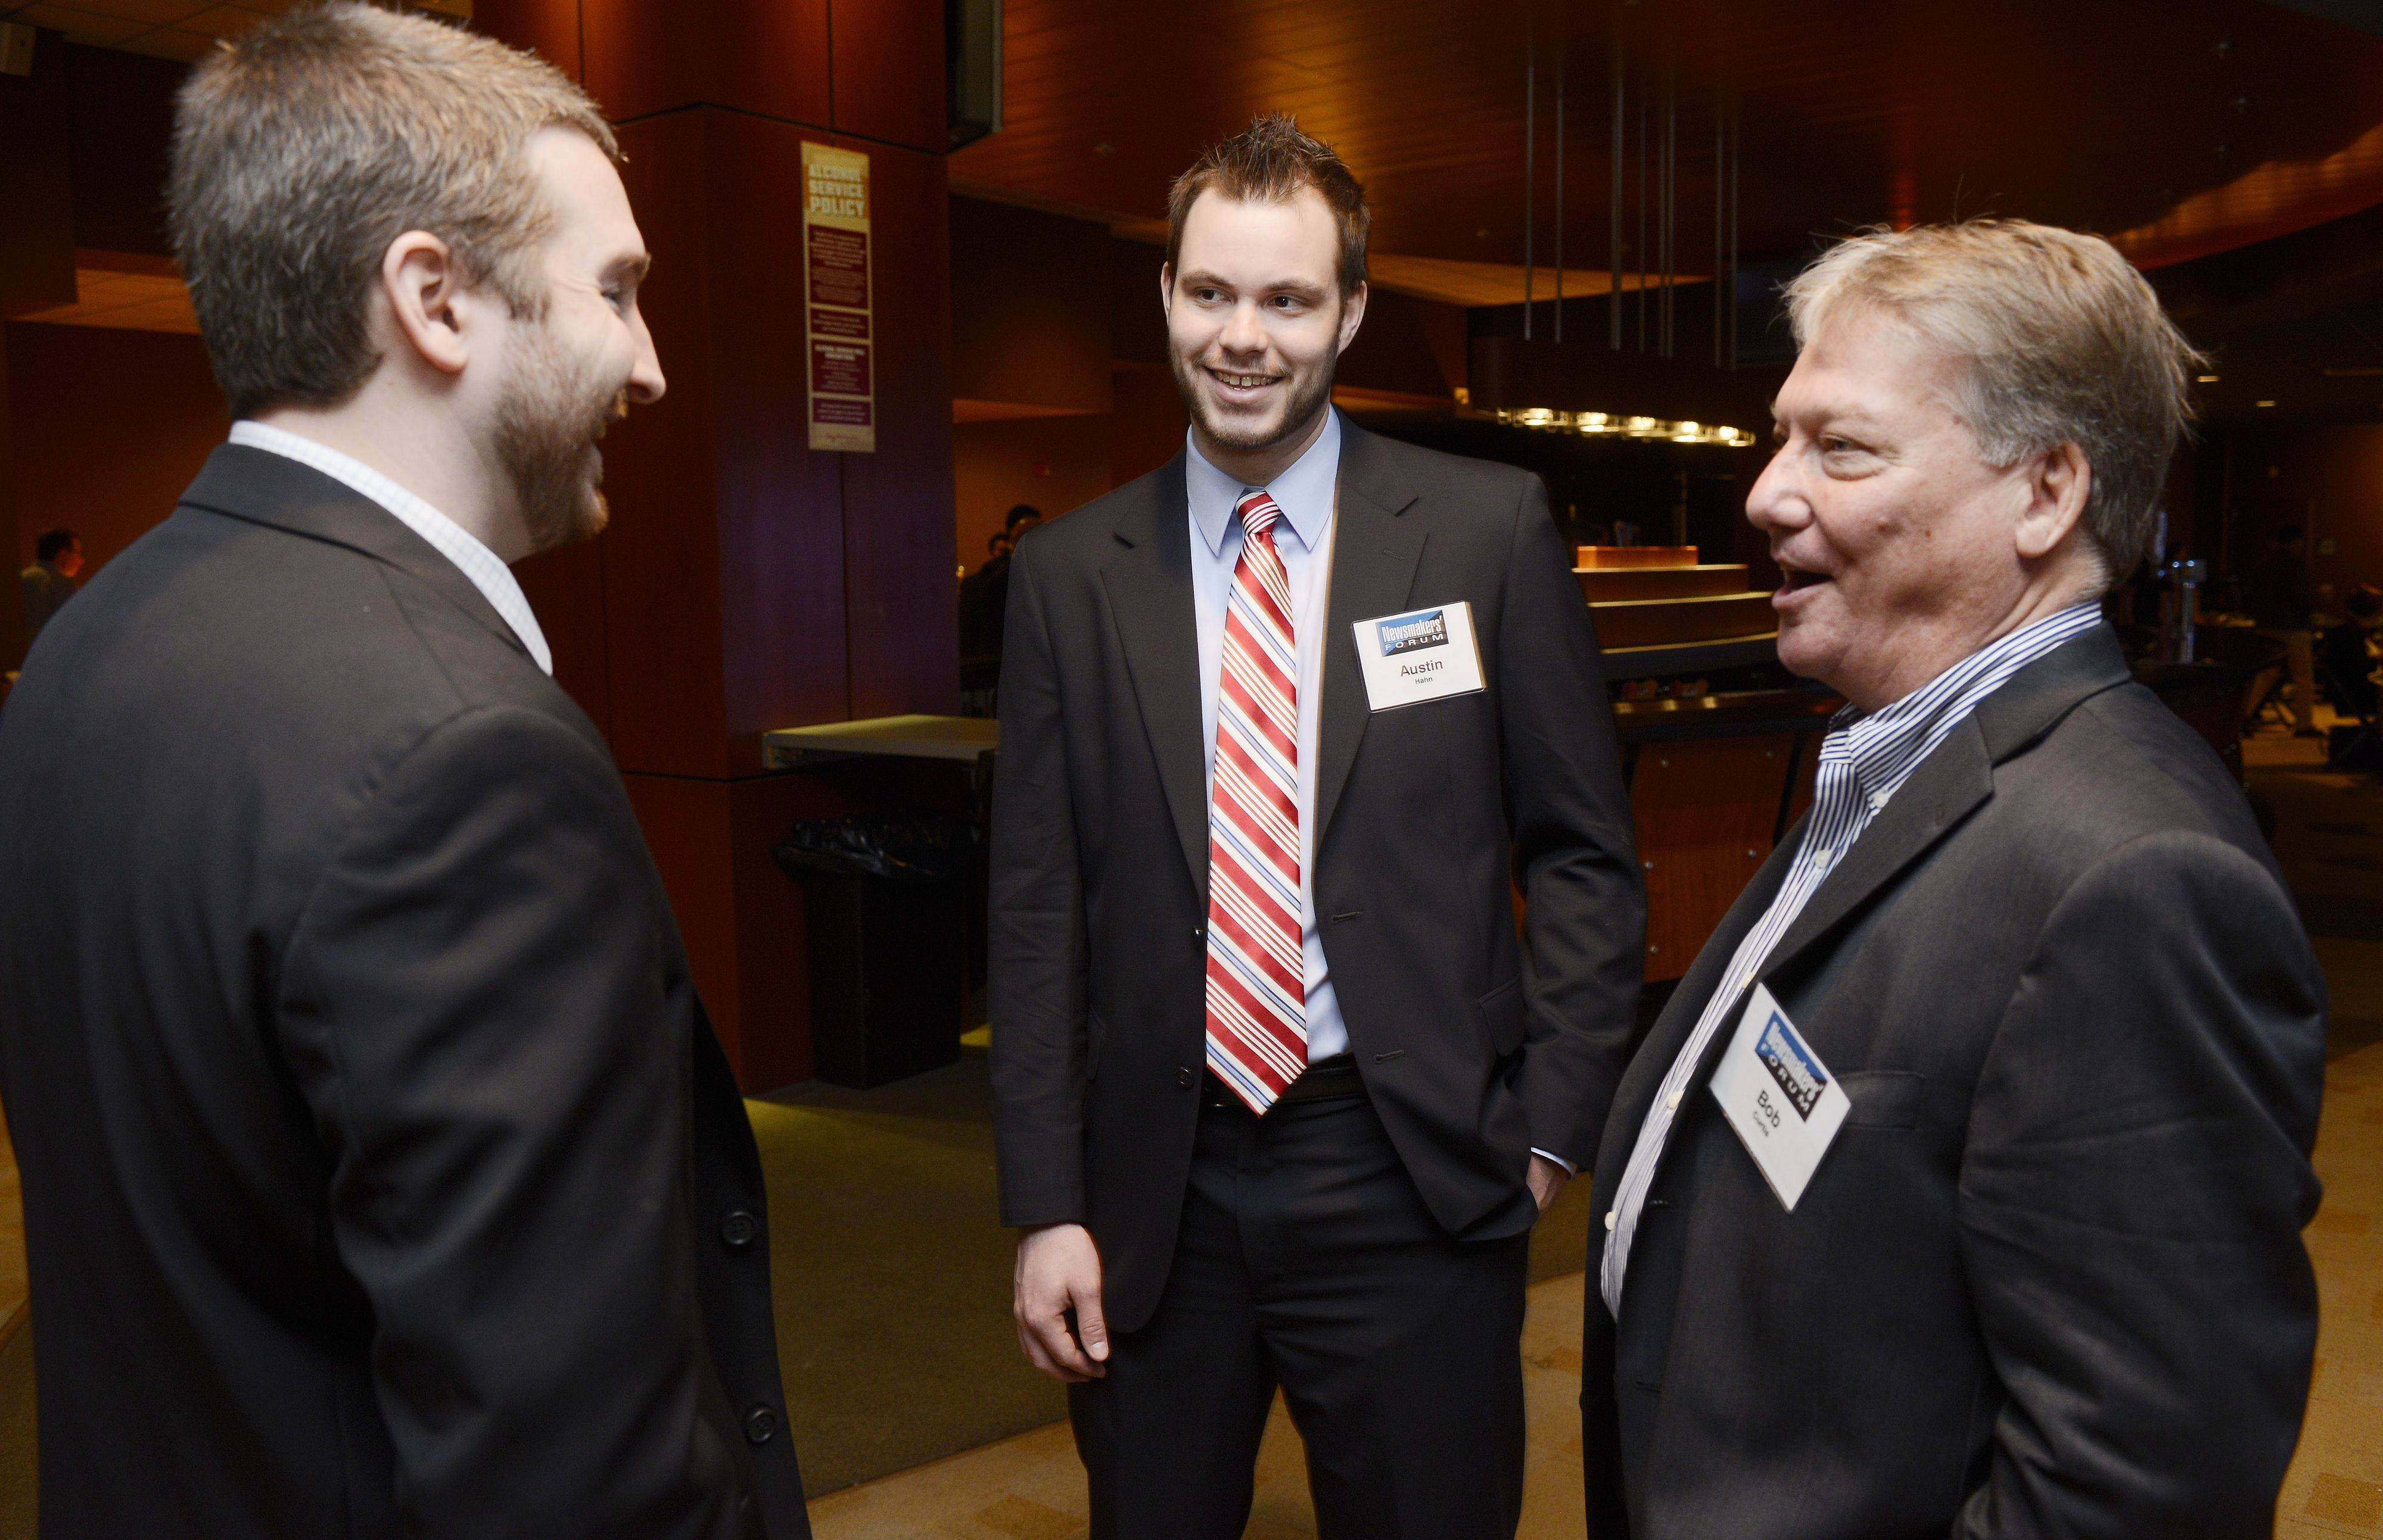 Greg Sprott of the Chicago Wolves, left, and Austin Hahn of Northwestern University Sports Administration chat with retired banker Bob Curtis of Barrington during a Newsmakers Forum on the business of sports, held at the Sears Centre in Hoffman Estates.